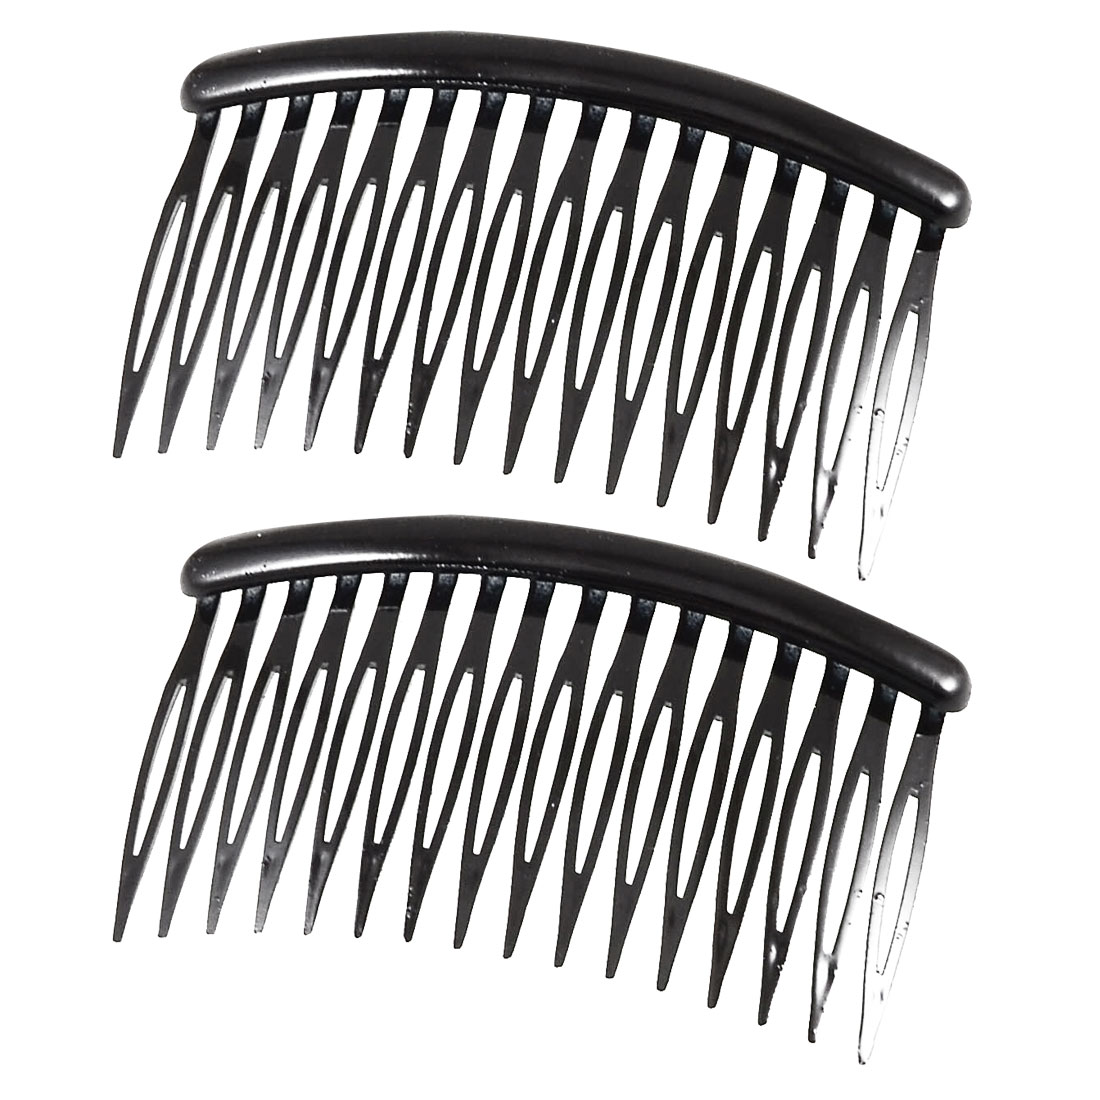 "Women 16 Teeth Black Plastic Comb Hair Clamp Hairdressing Pin Clip 3.1"" Long 2 Pcs"